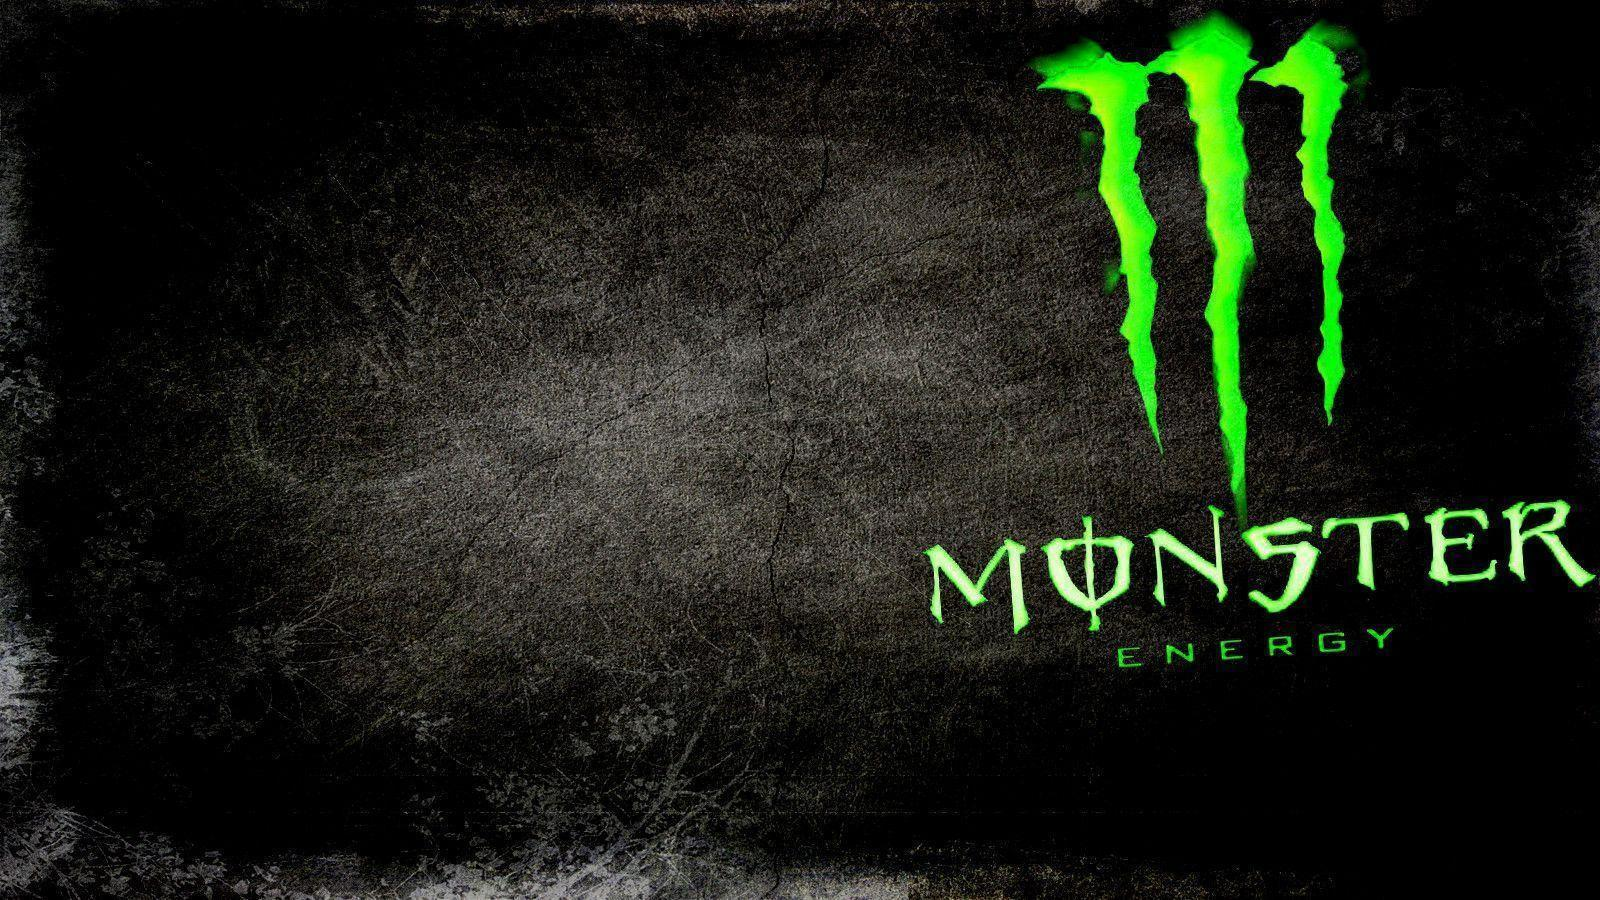 Image For > Cool Monster Energy Wallpapers